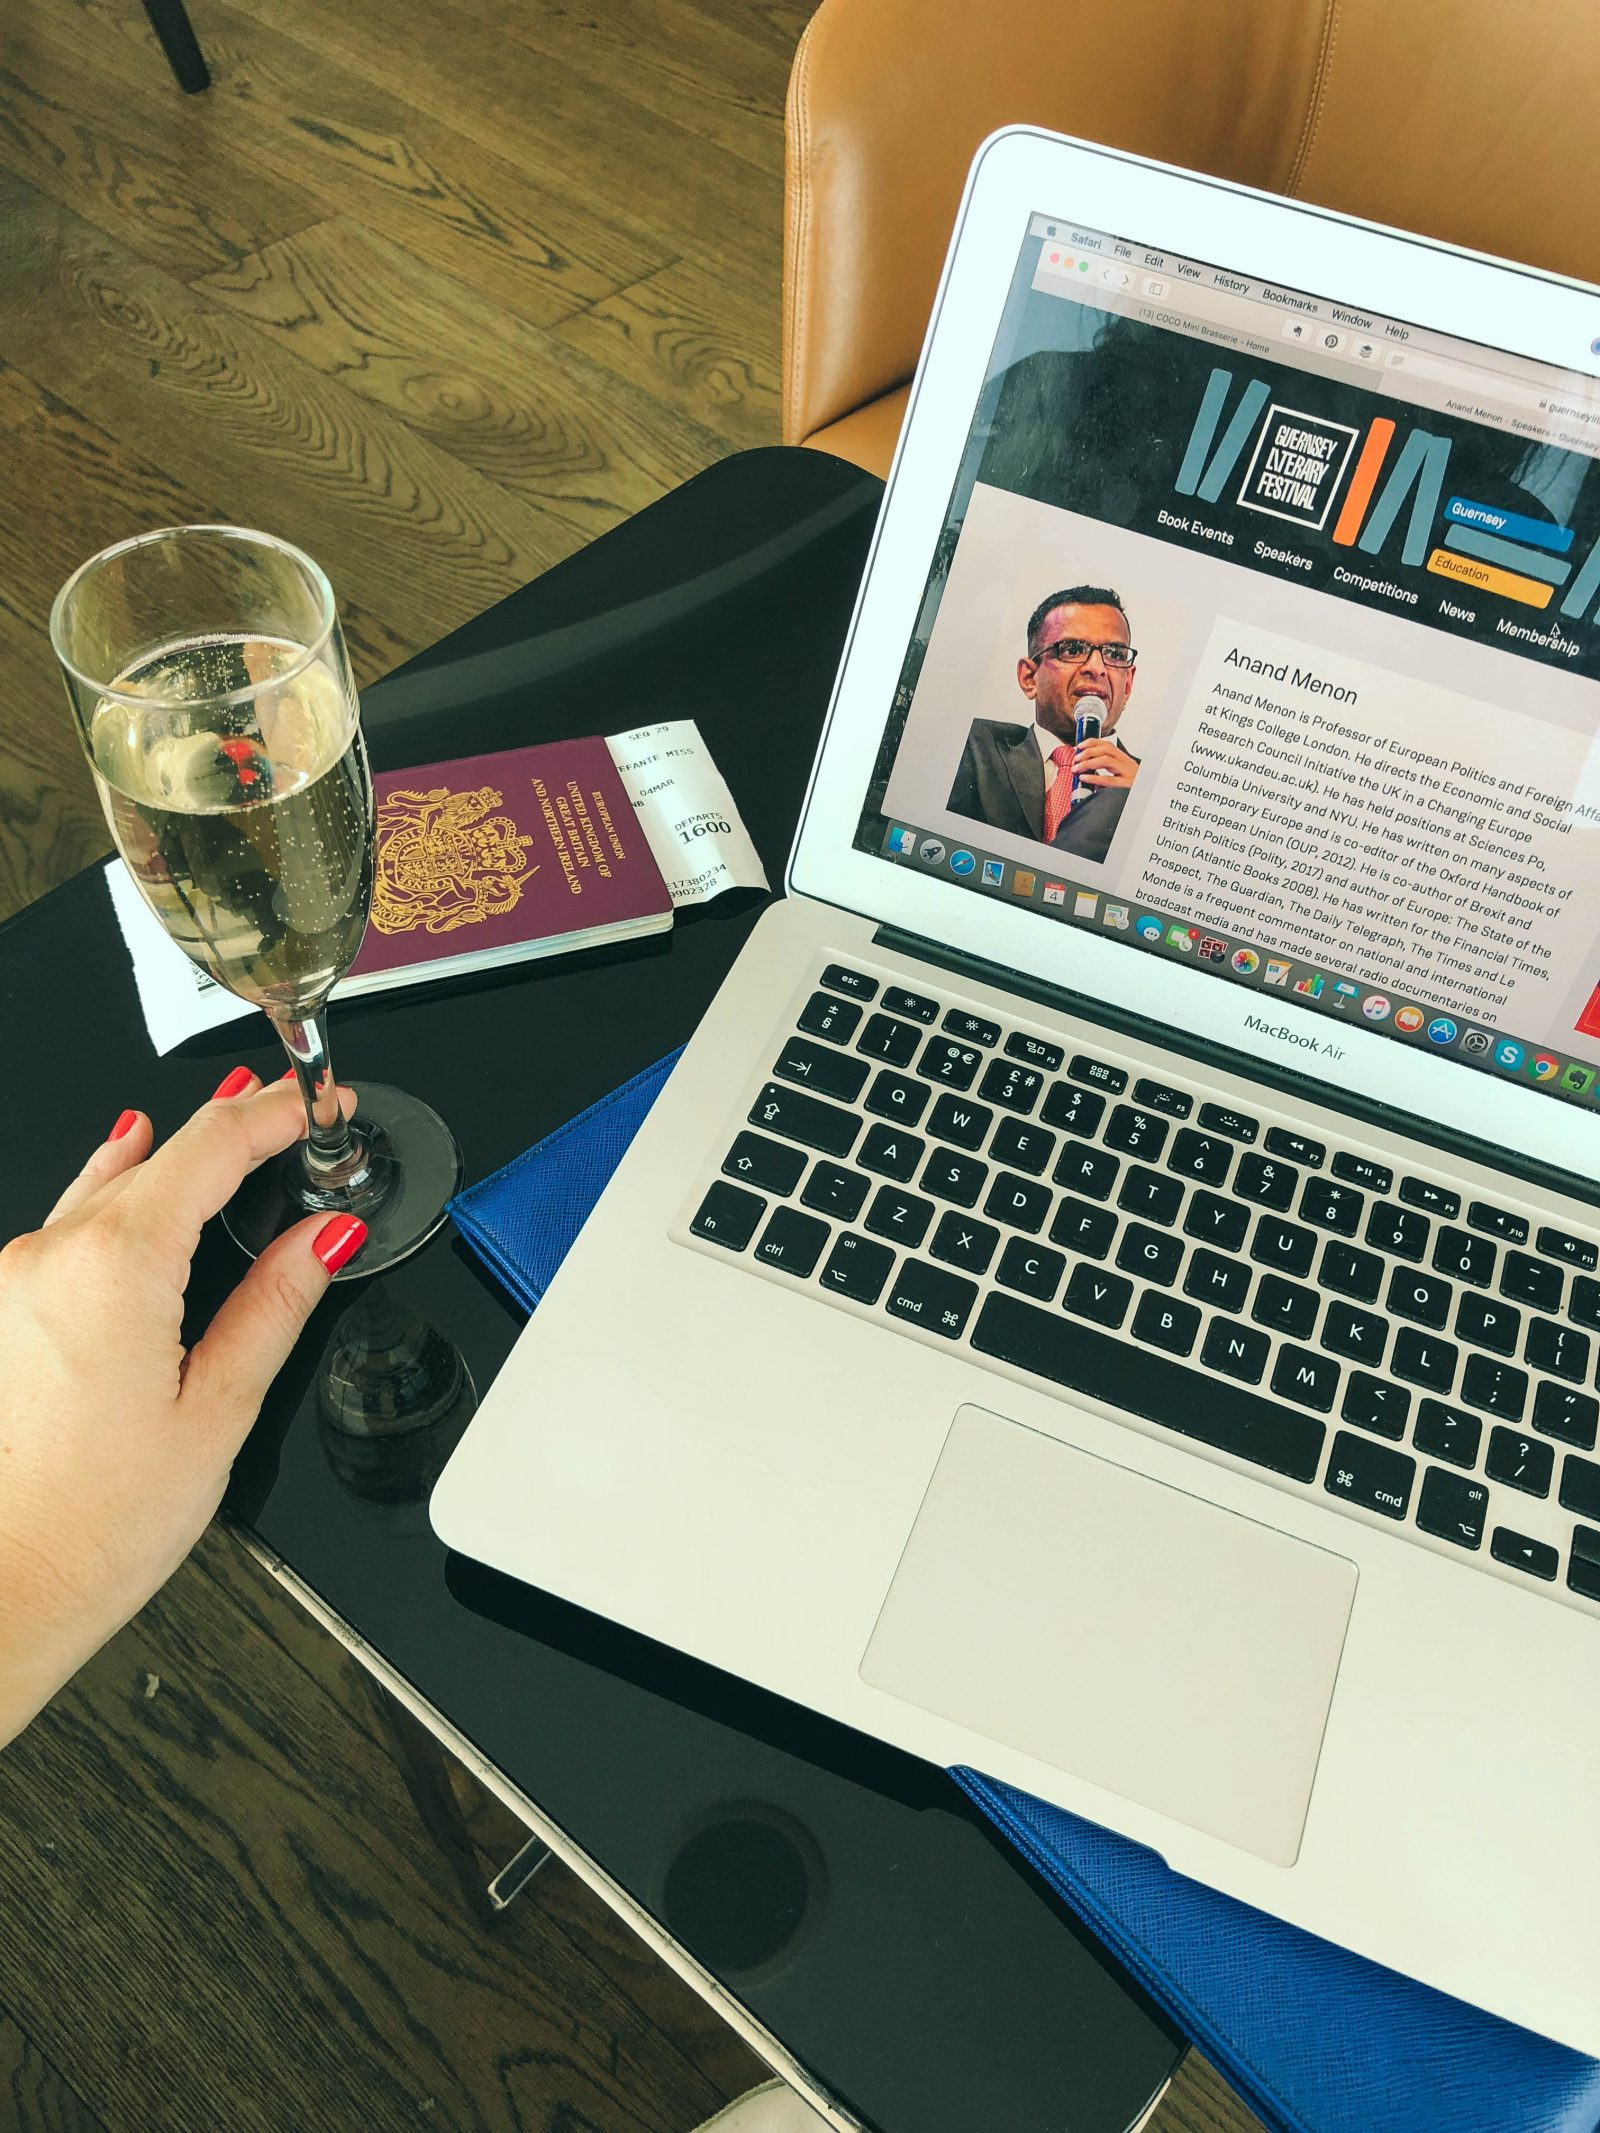 Tips for Working and Travelling - StefanieGrace.com